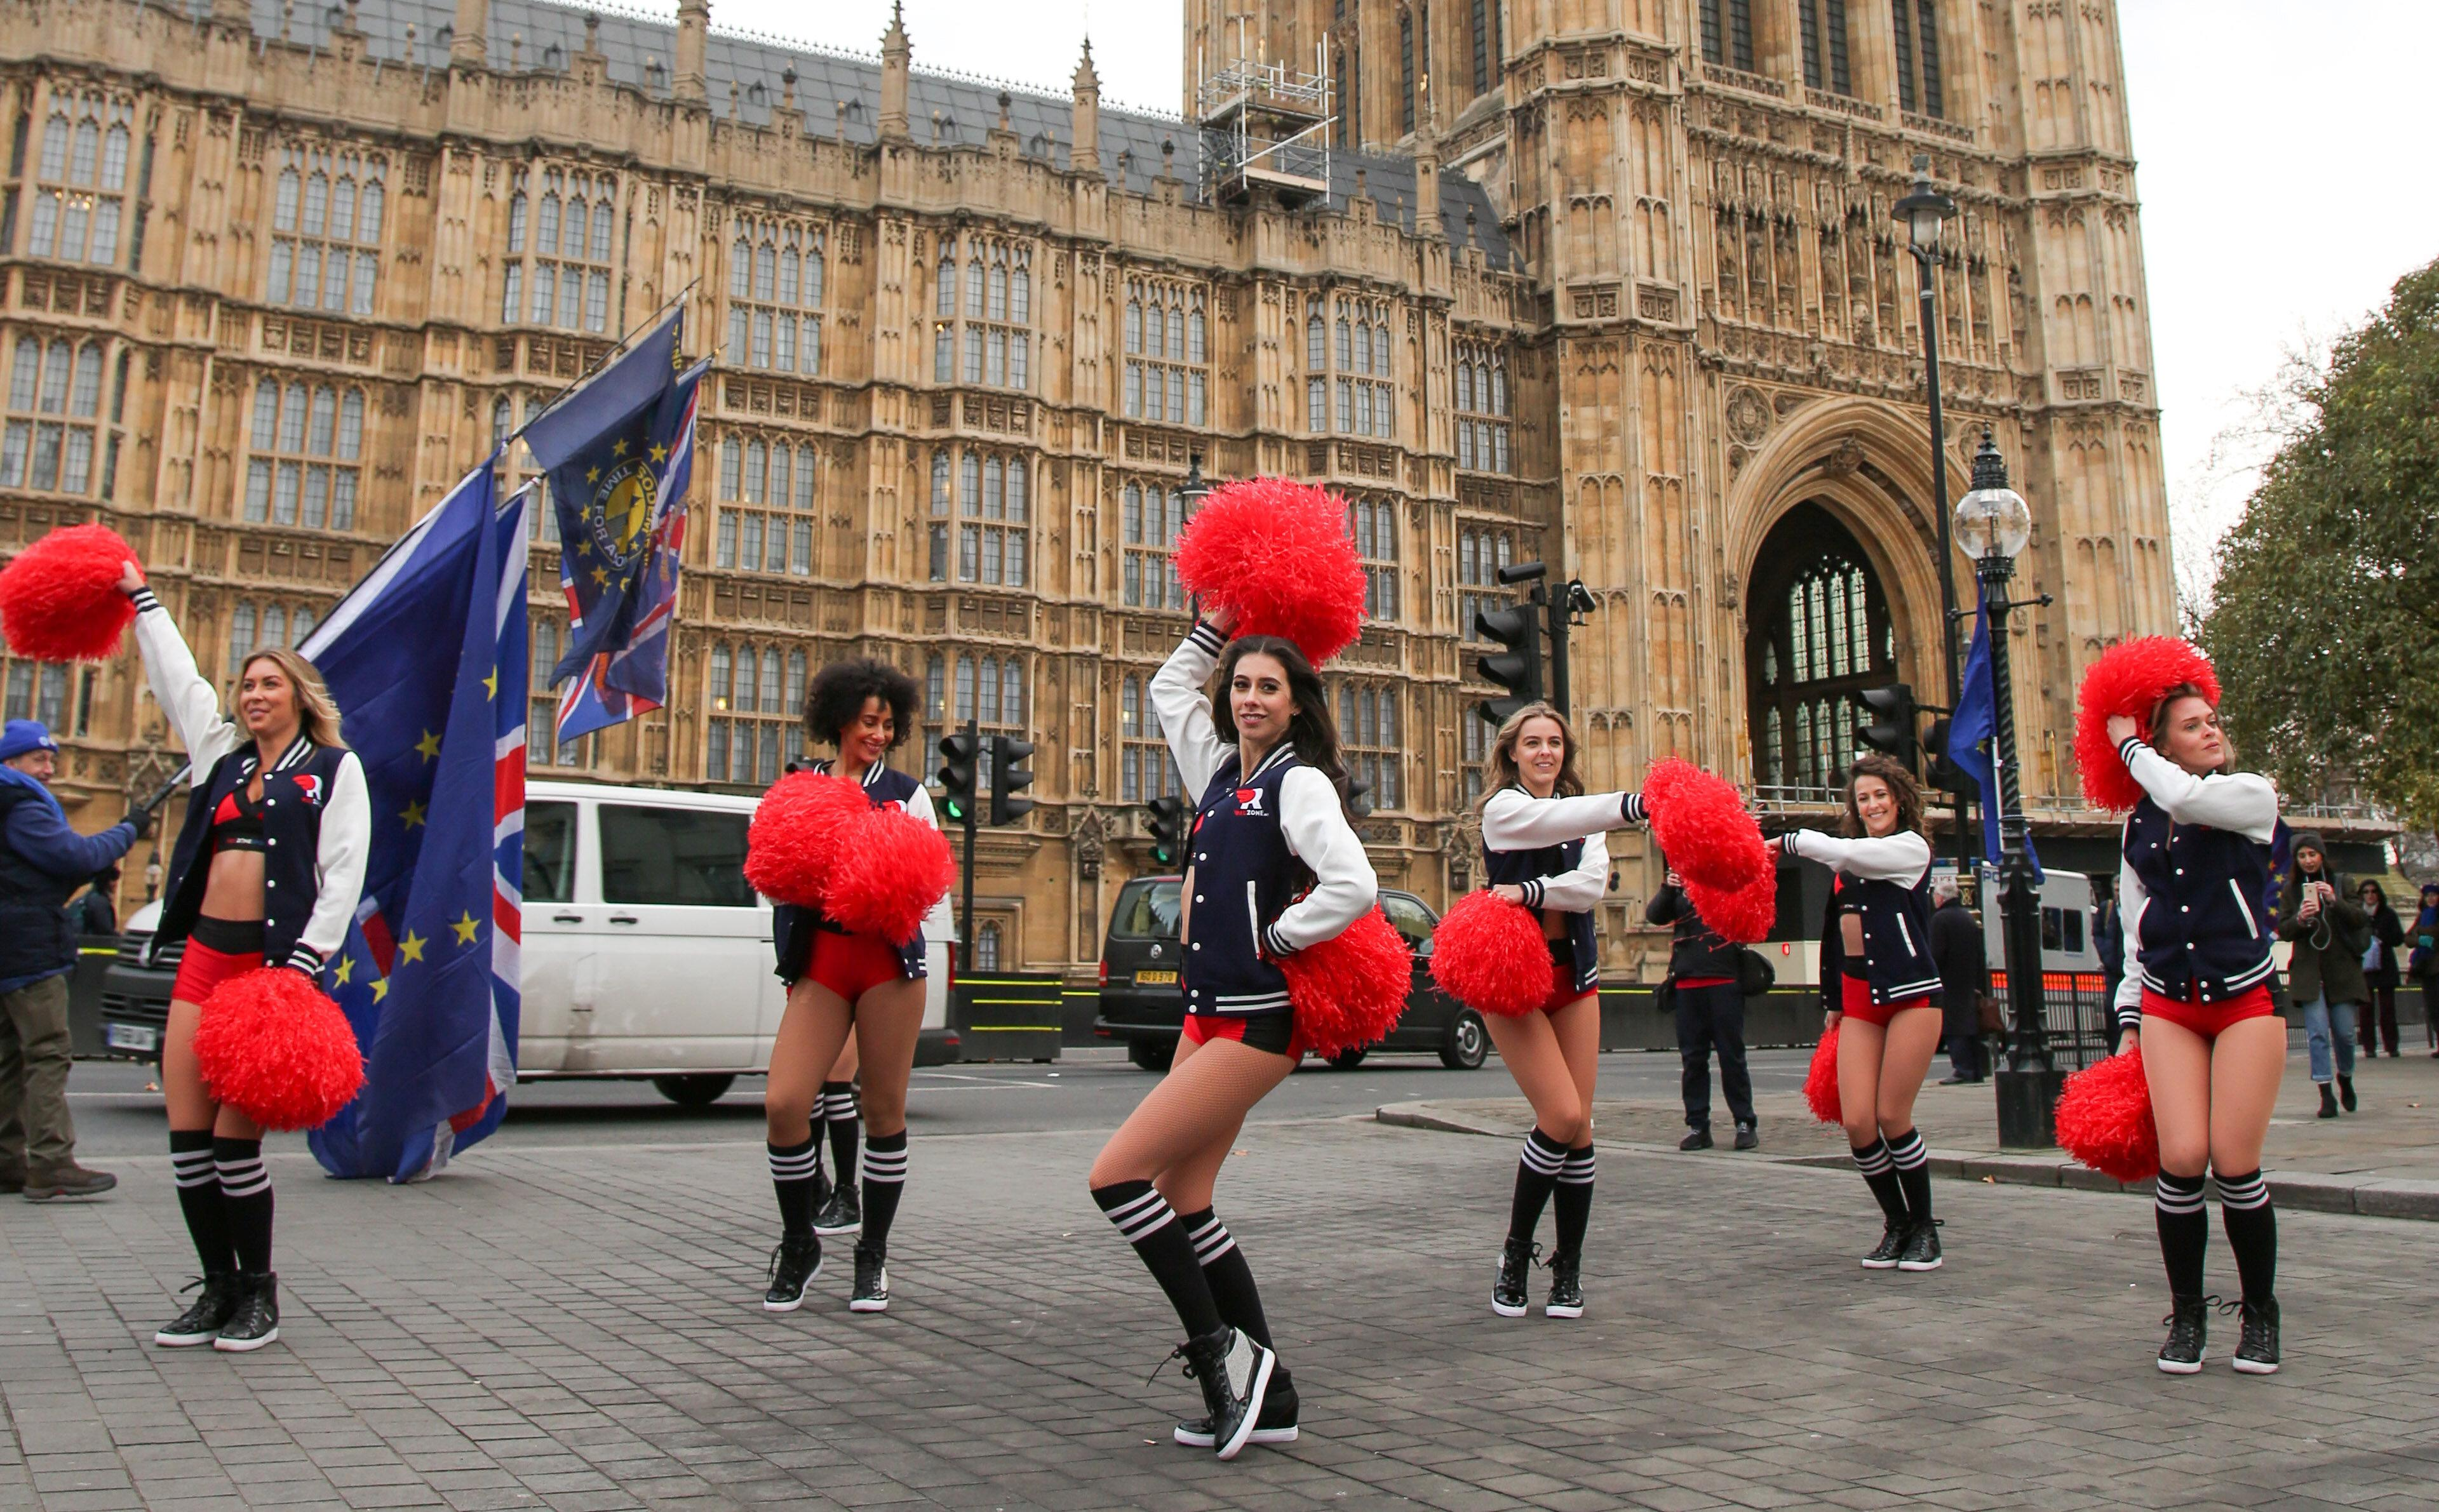 Cheerleaders performed in front of Parliament ahead of the Super Bowl